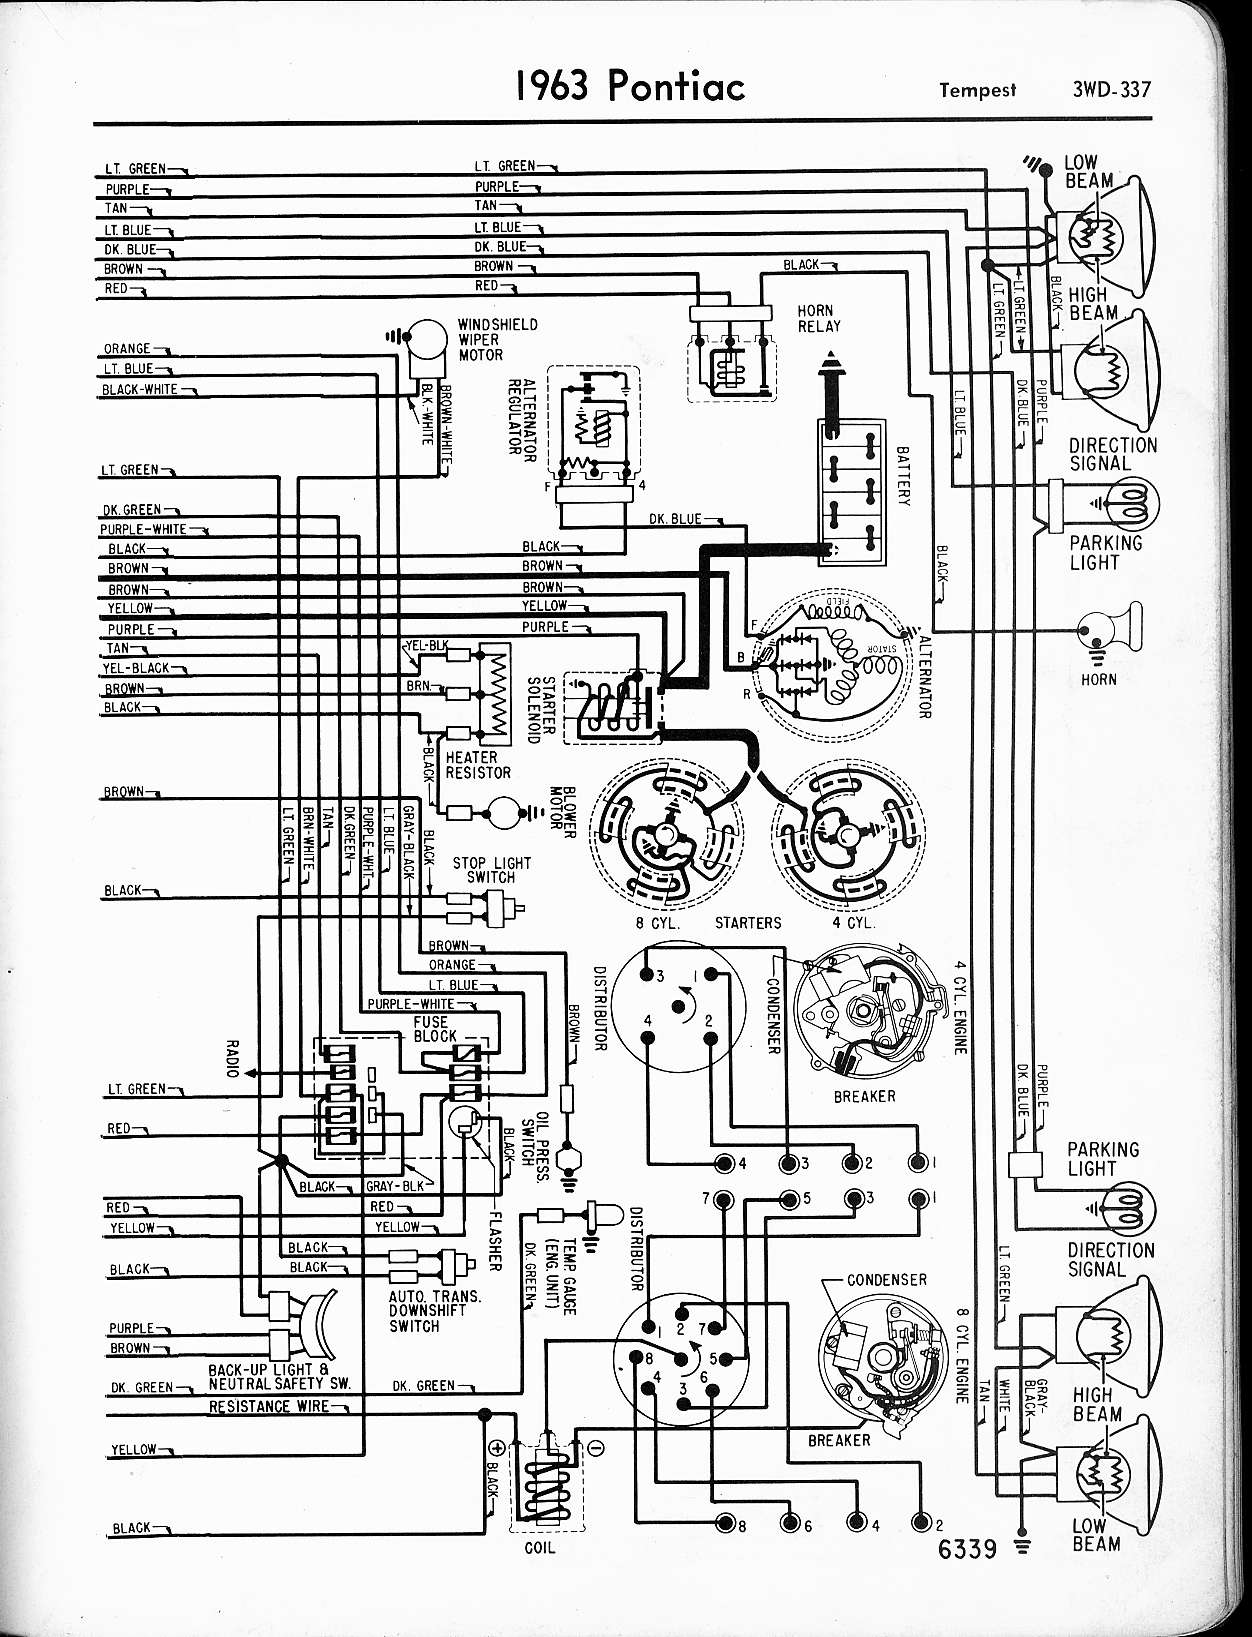 1963 Vw Engine Wiring Library 1957 Diagram Pontiac 1965 Rh Oldcarmanualproject Com 1971 Firebird